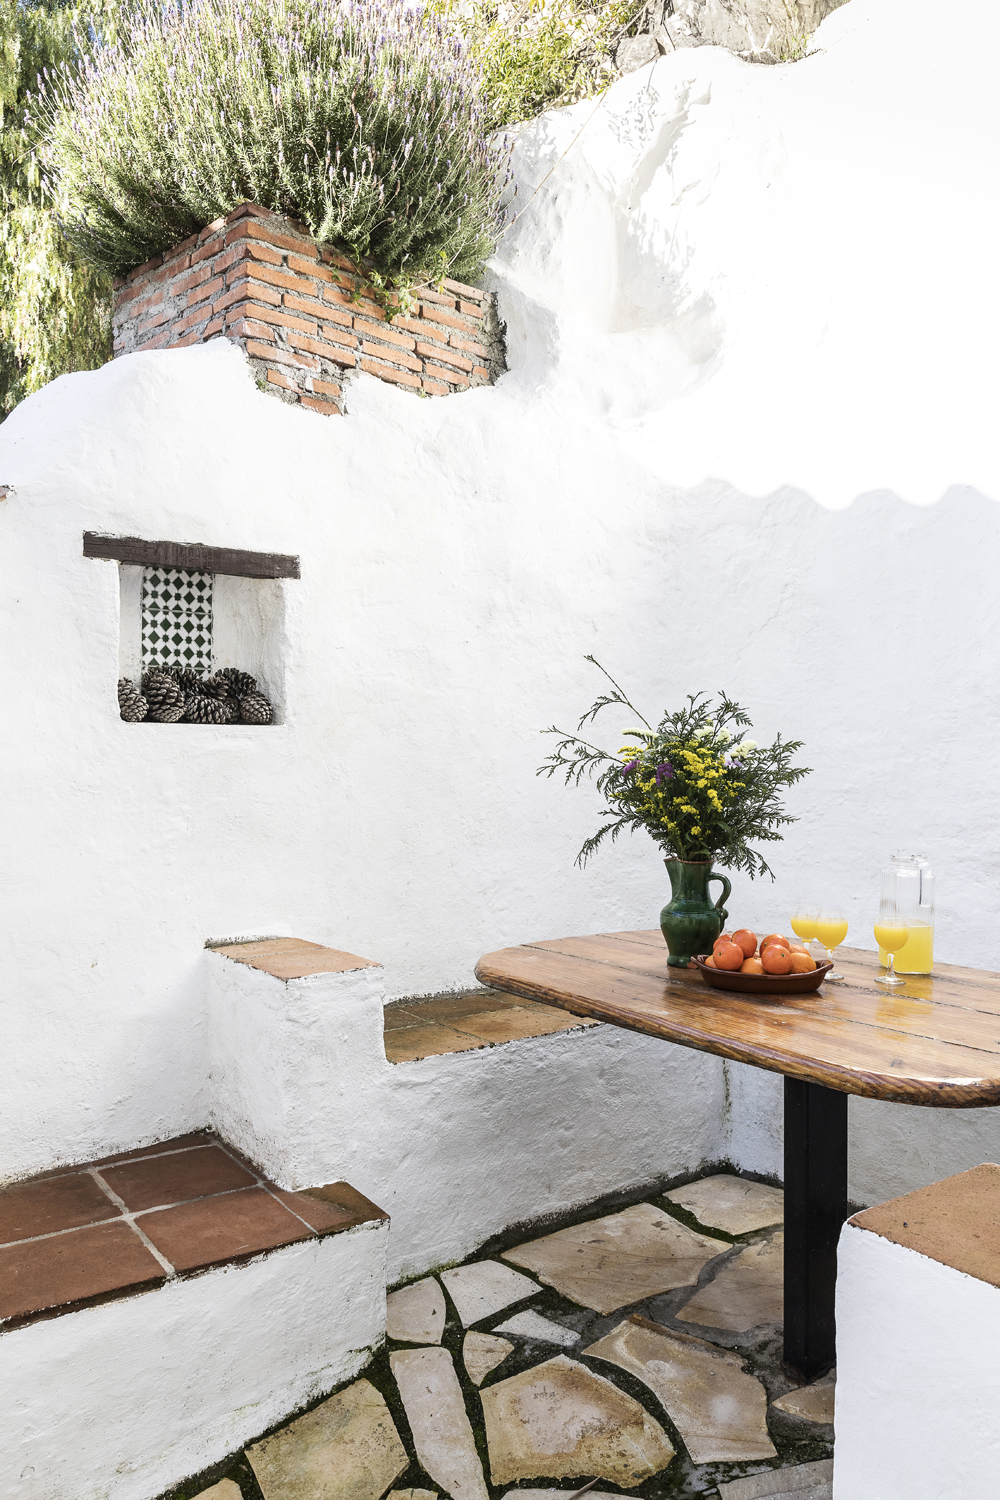 Canillas de Aceituno, Spain, holiday, rent, apartment, townhouse, rental, vacationhome, home, interior, spanish, style, interiorphotography, interior design, photographer, Frida Steiner, Visualaddict, visualaddictfrida, outdoors, patio